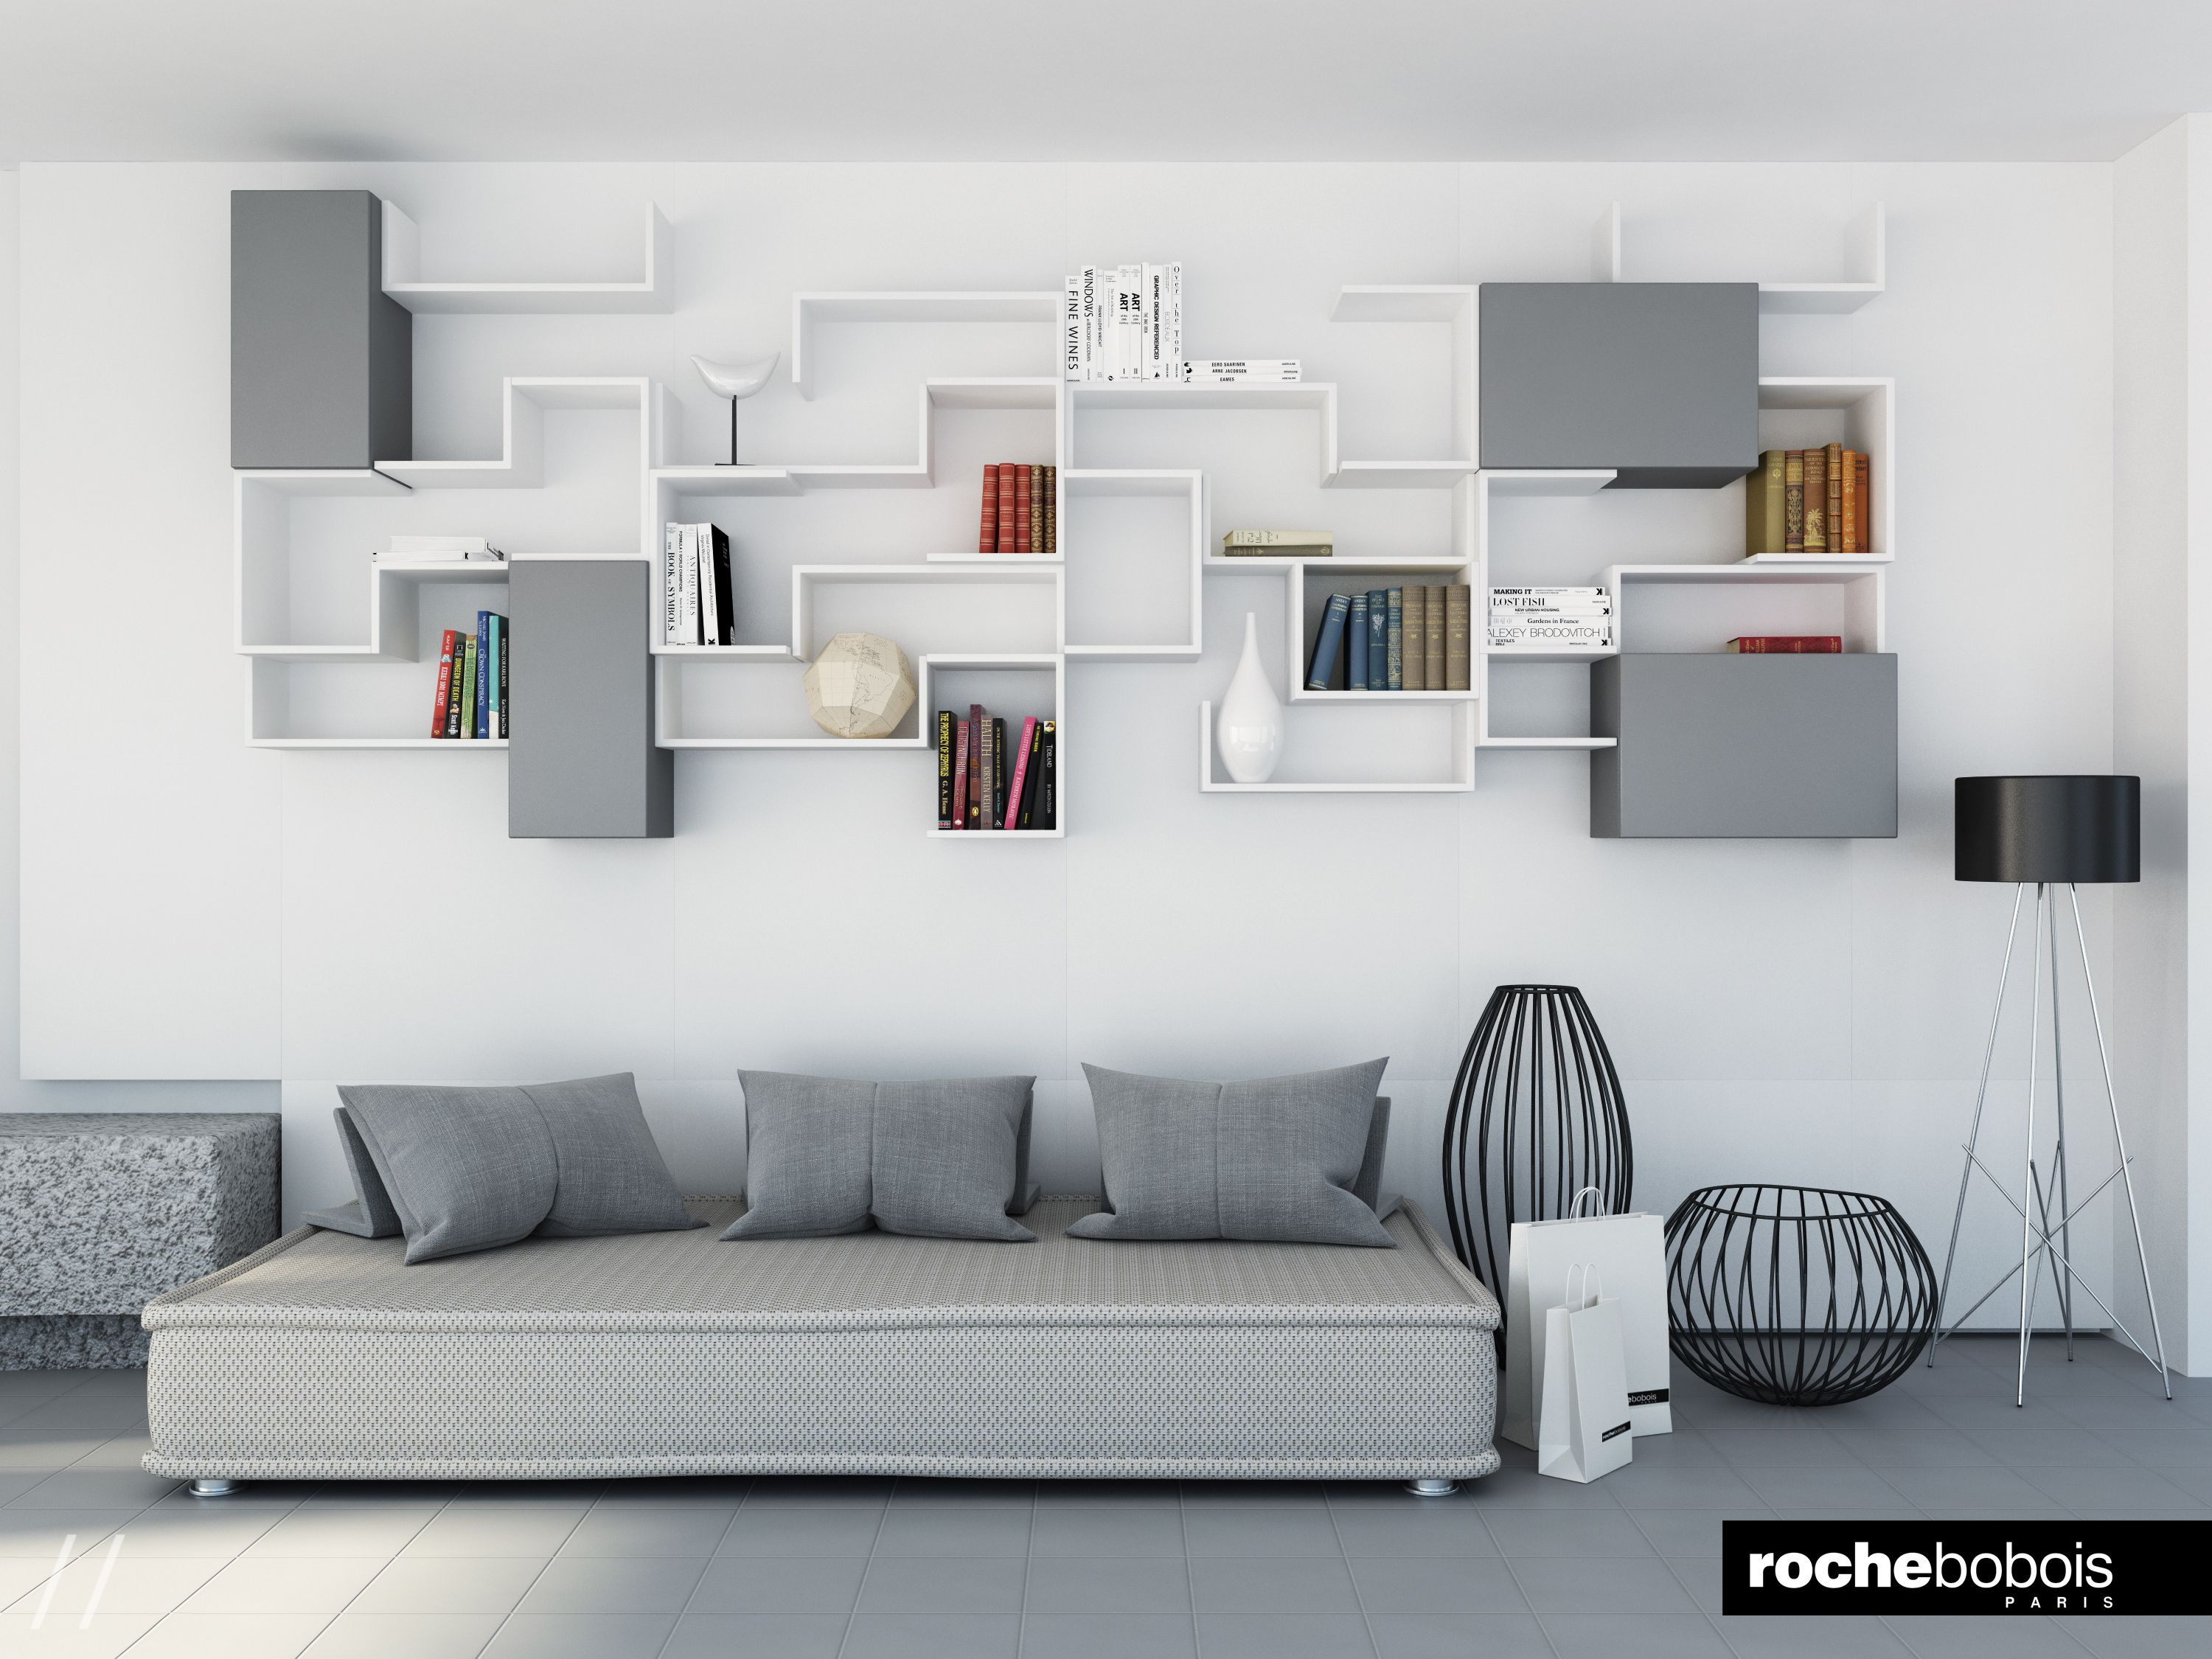 Living room in toni neutri canape sofa roche bobois for Canape roche bobois